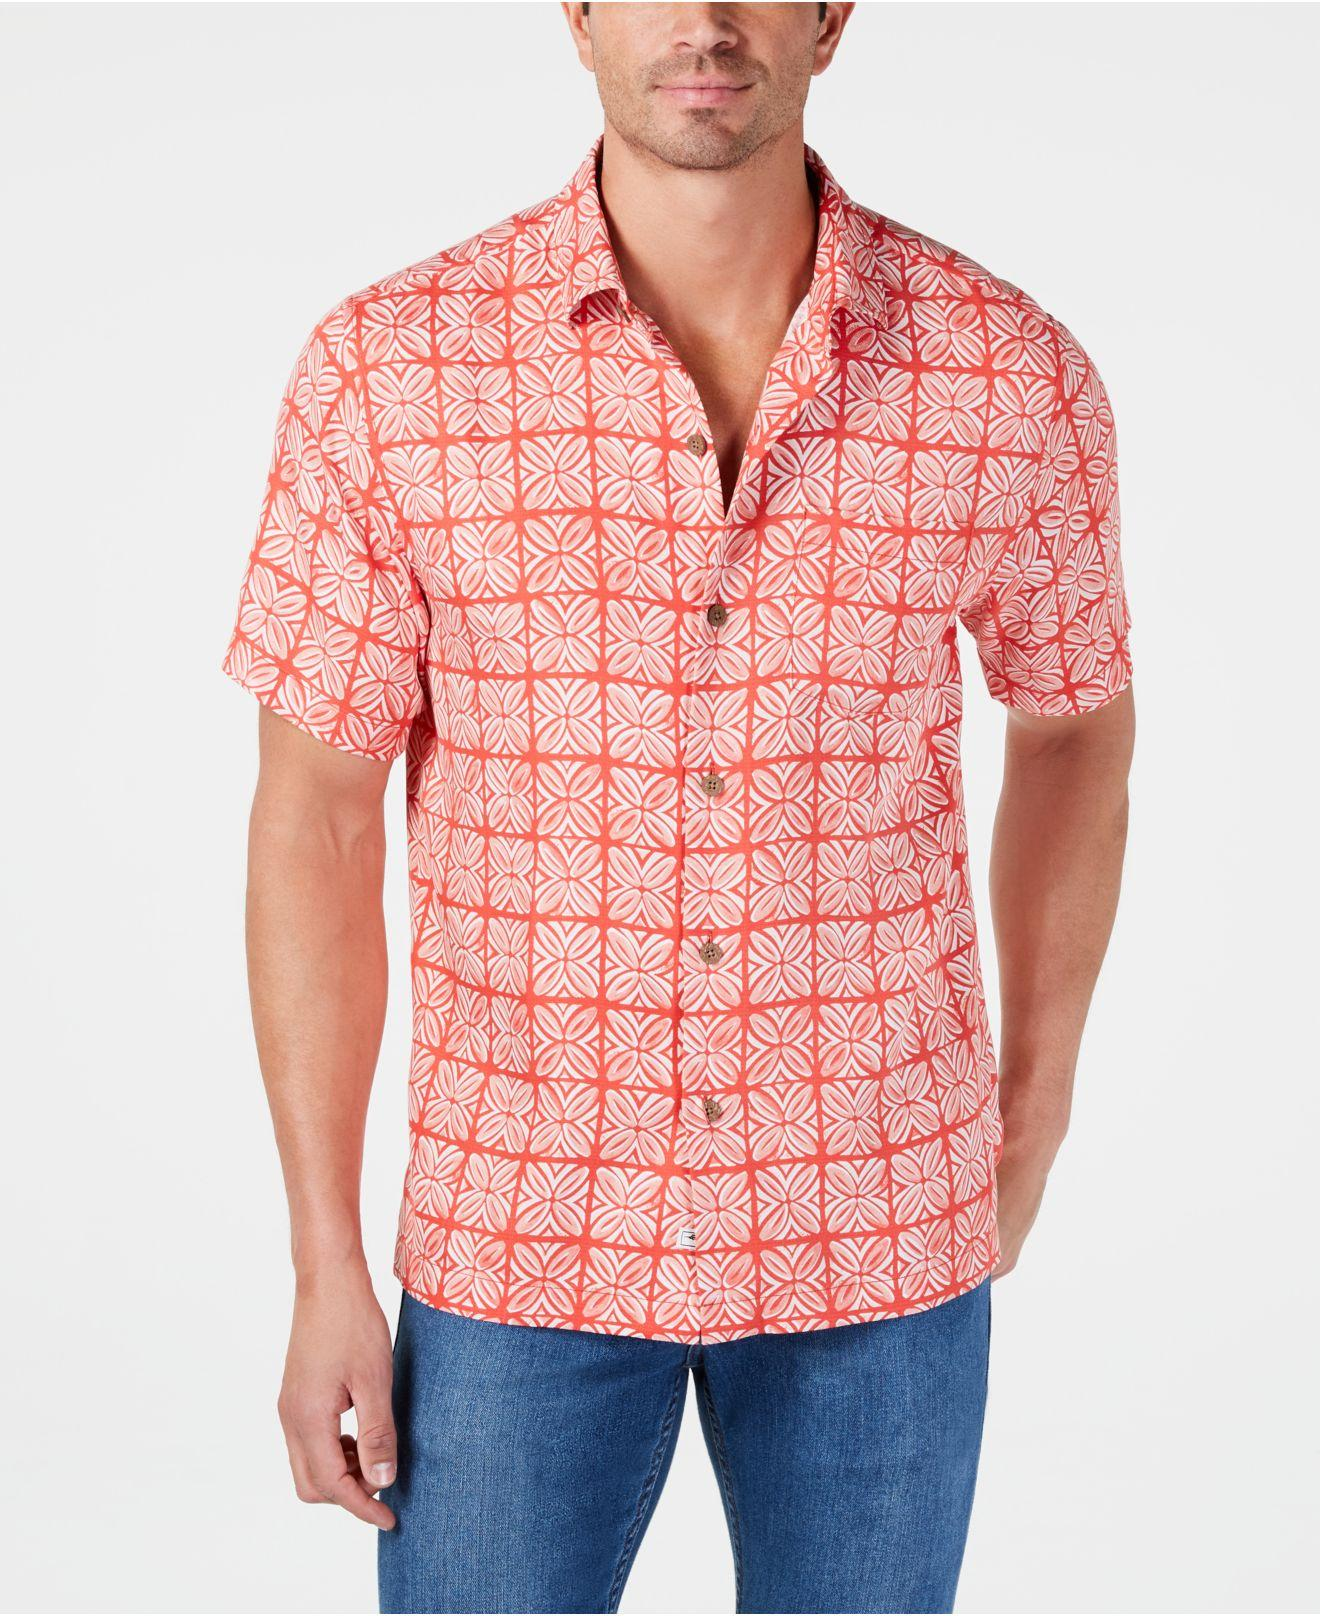 cfa2fee8135 Tommy Bahama. Men s Orange Regular-fit Tonal Geo-print Silk Camp Shirt